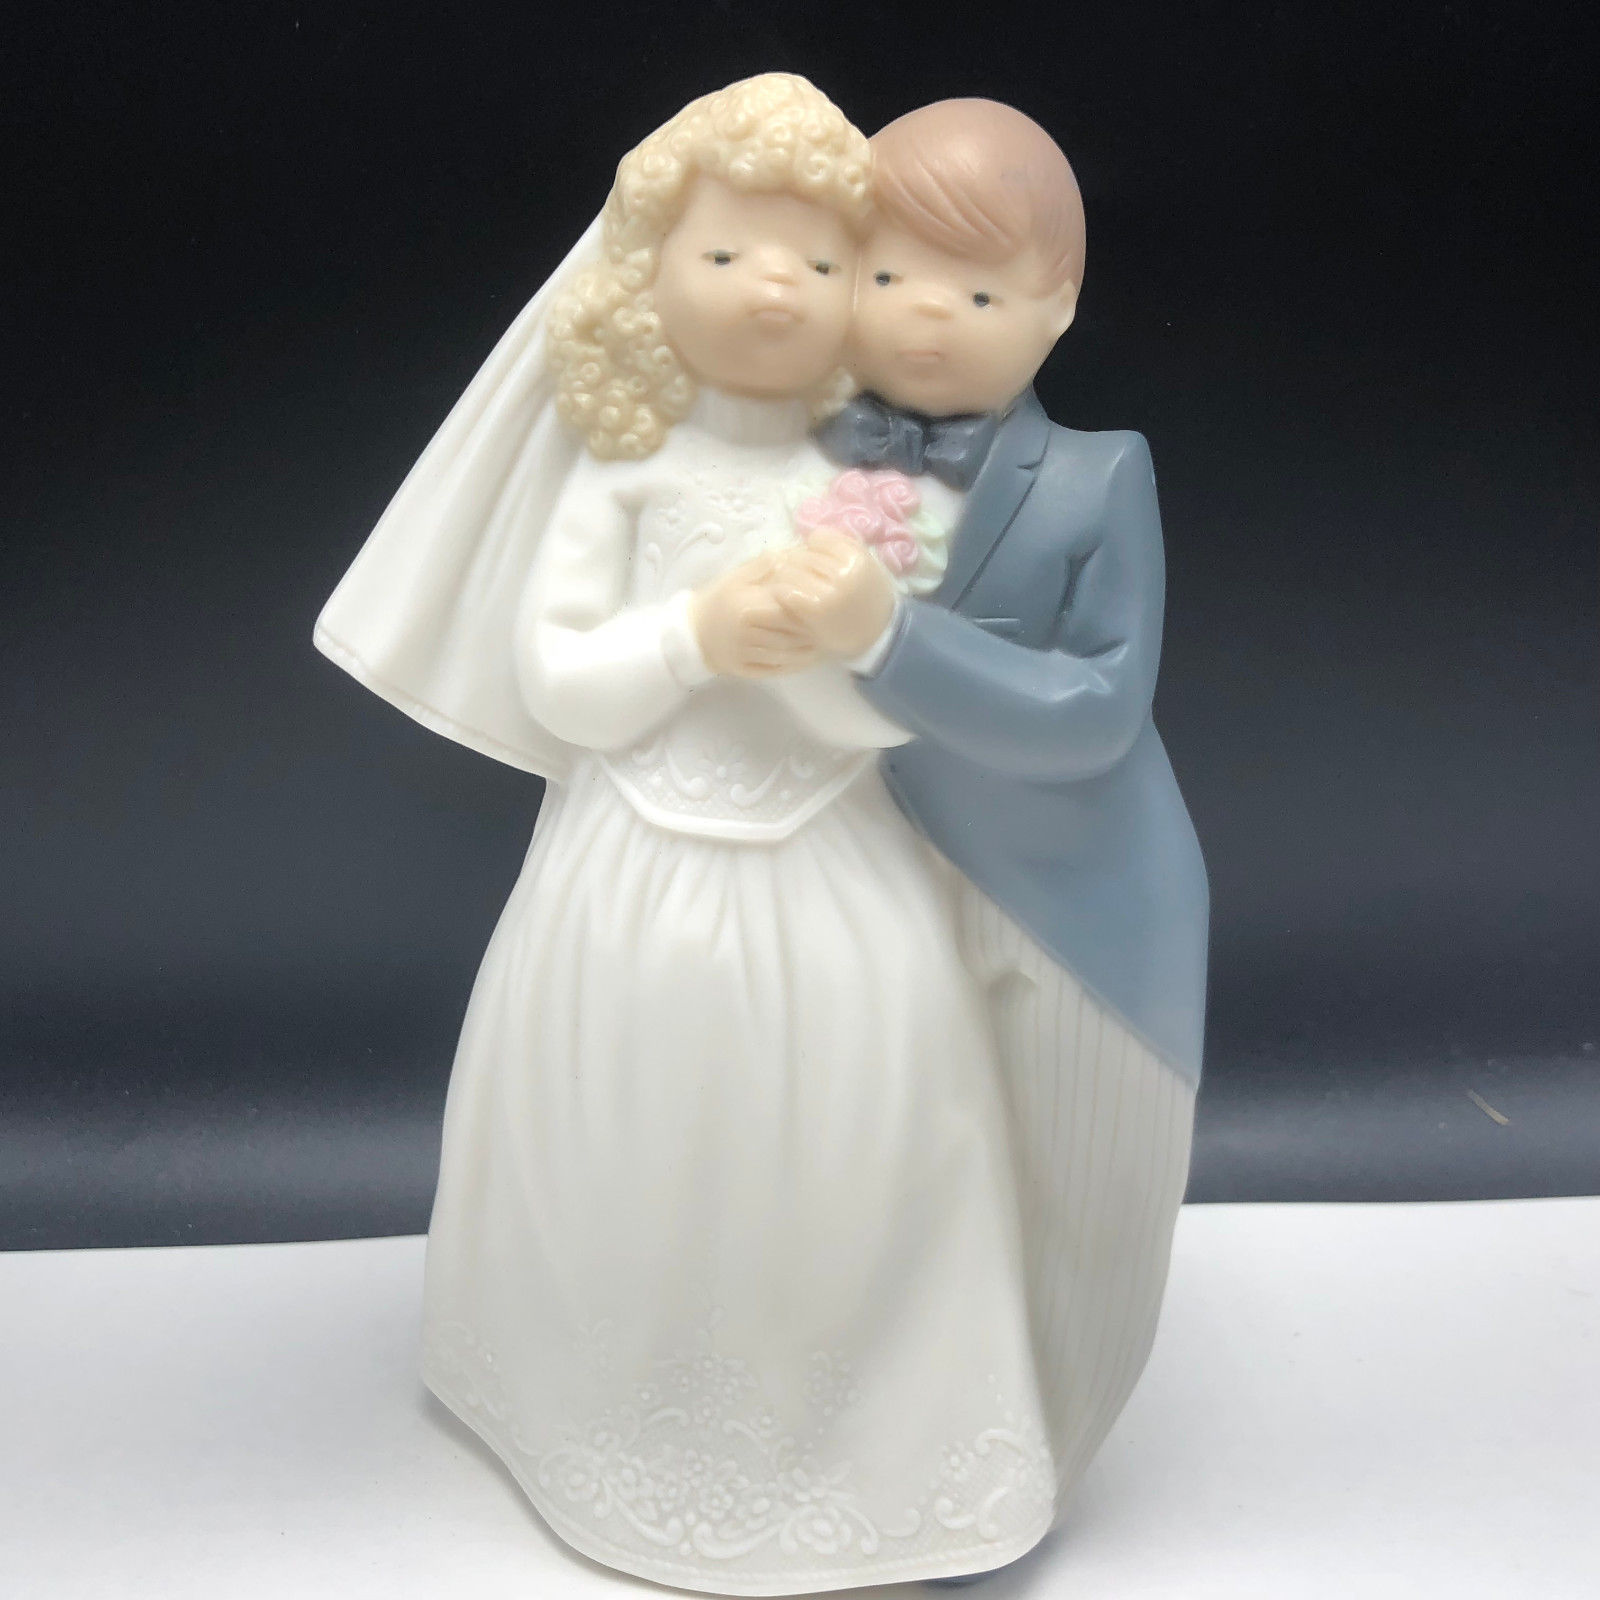 Primary image for DAISA FIGURINE SPAIN porcelain golden memories 1993 statue sculpture wedding 535